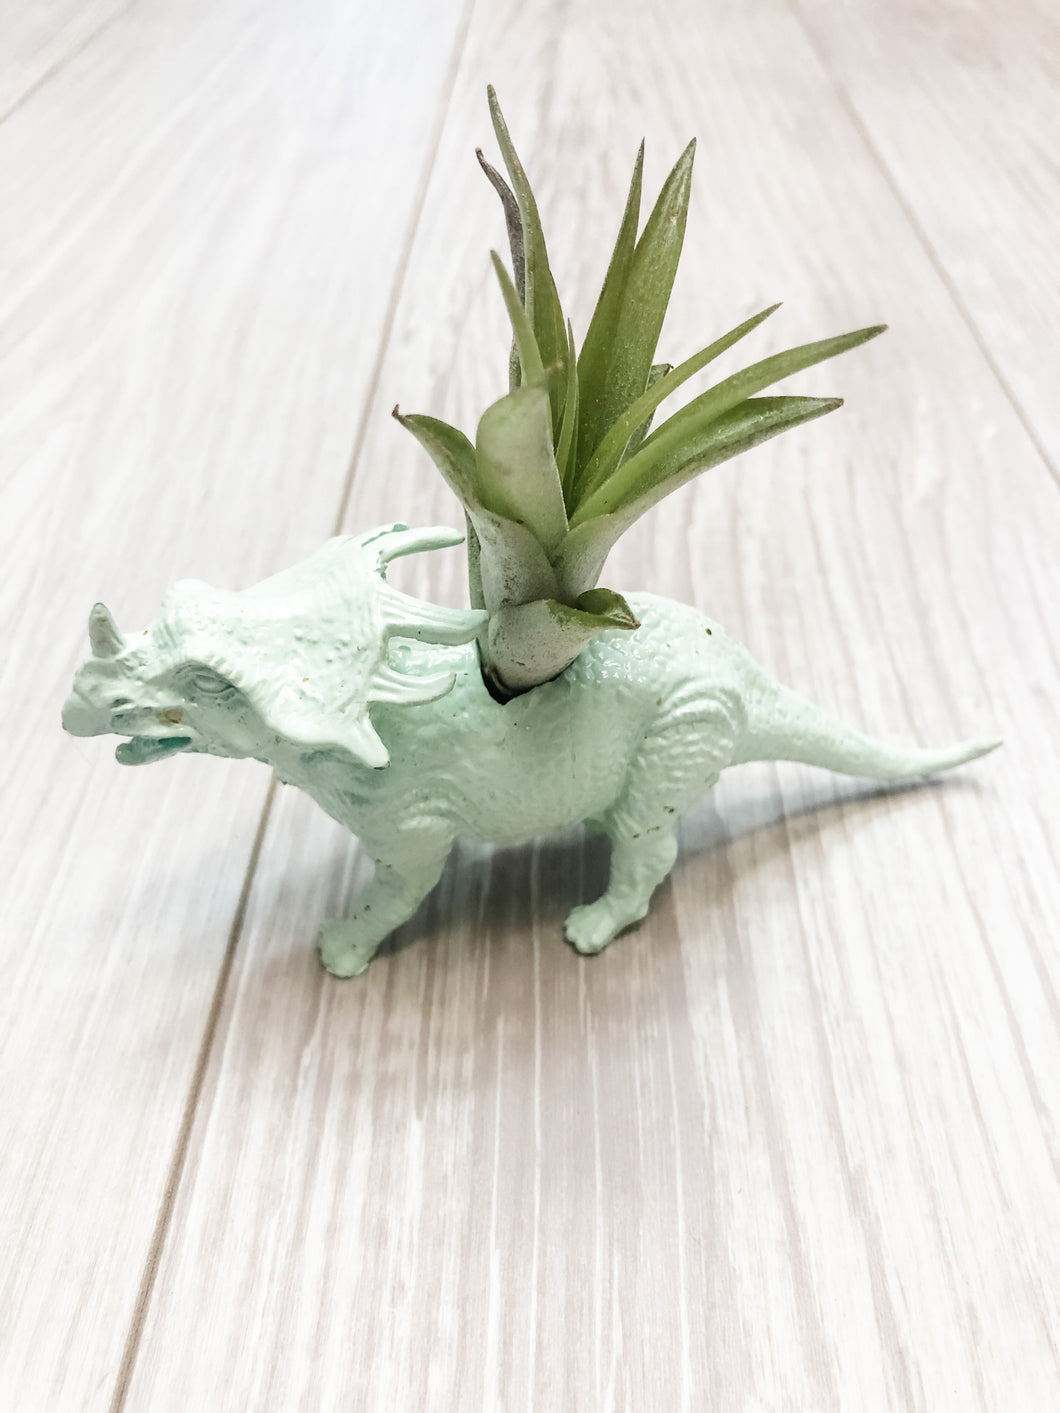 Mint Triceratops Dinosaur Planter with Air Plant